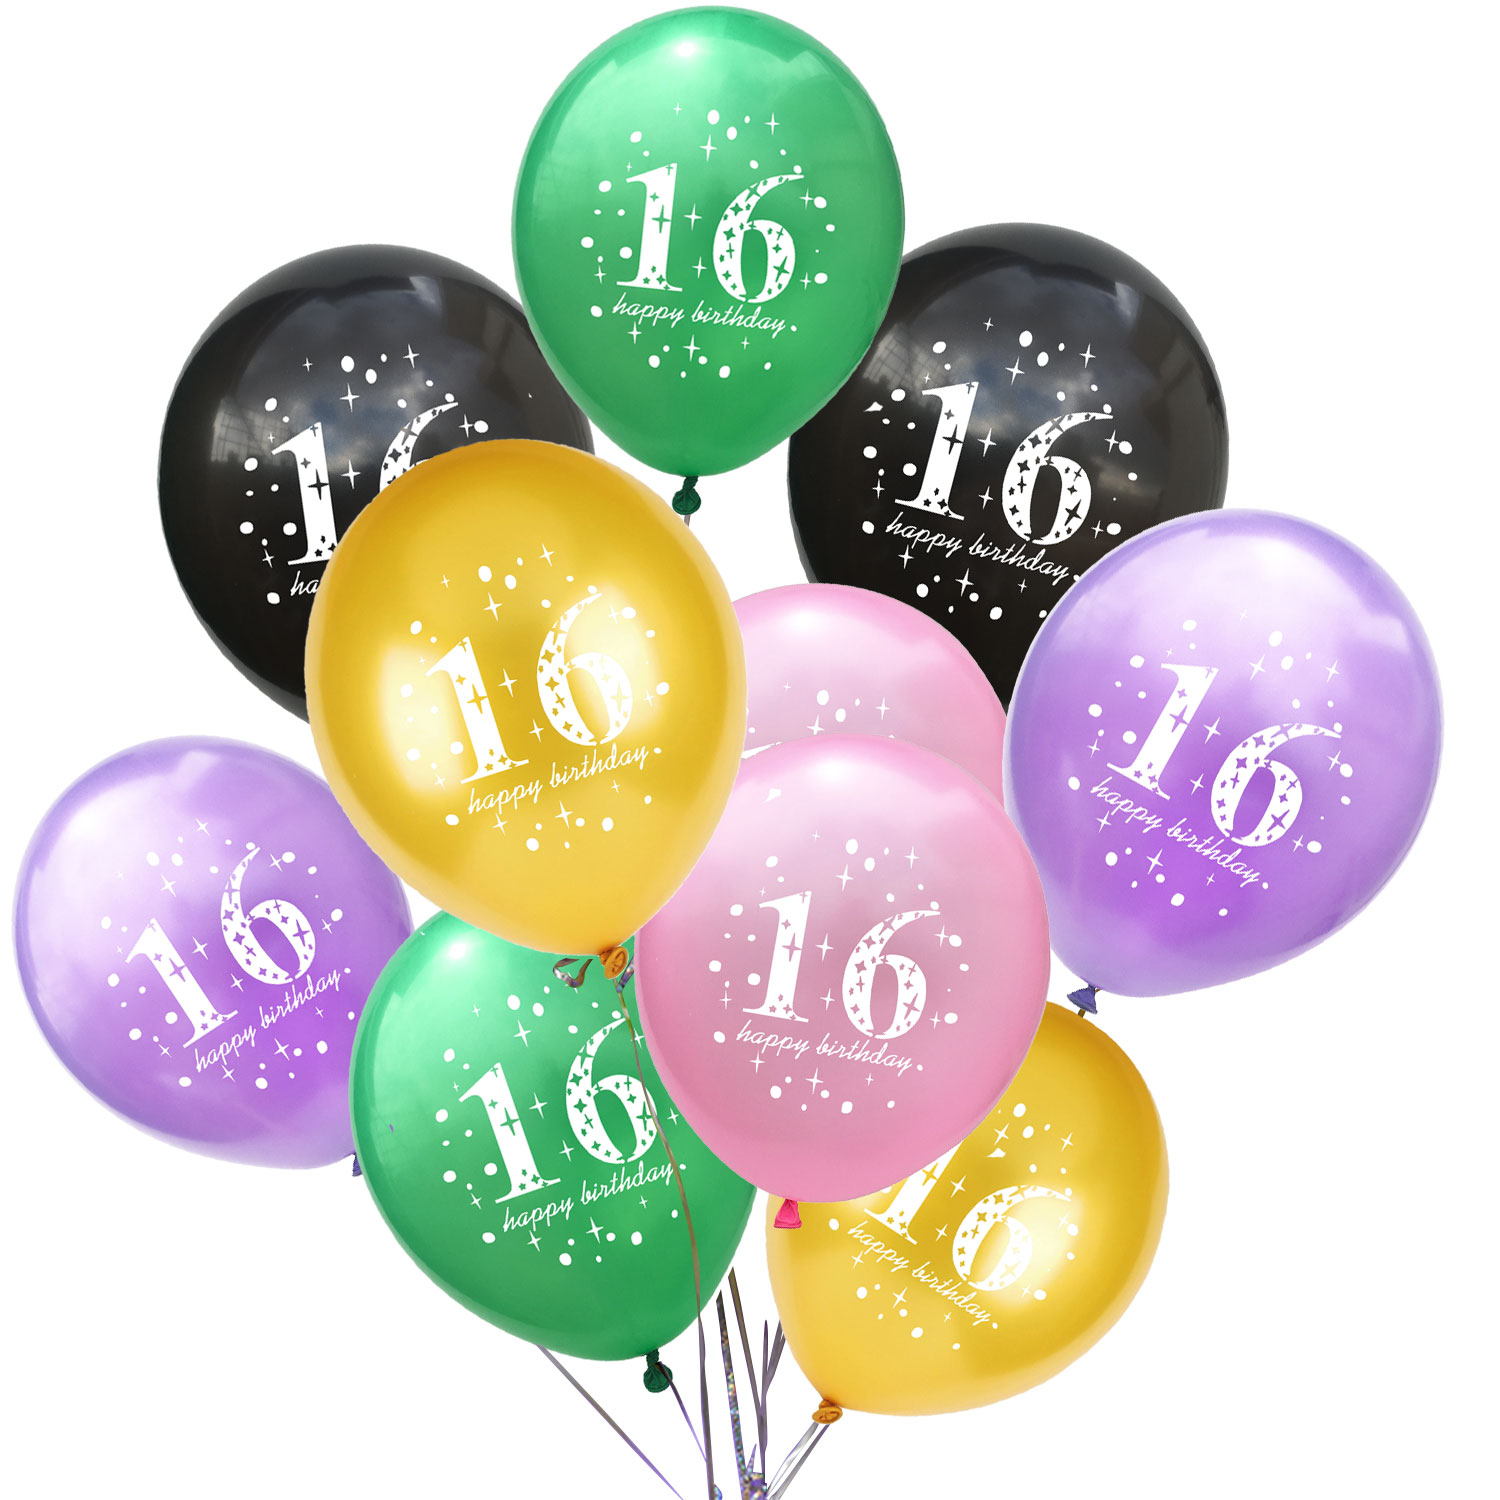 Zljq 10pcs 12inch Chic Sweet Sixteen Birthday Celebration Latex Balloon Party Decoration Supplies Boy And Girl Birthday Party Ballons Accessories Aliexpress